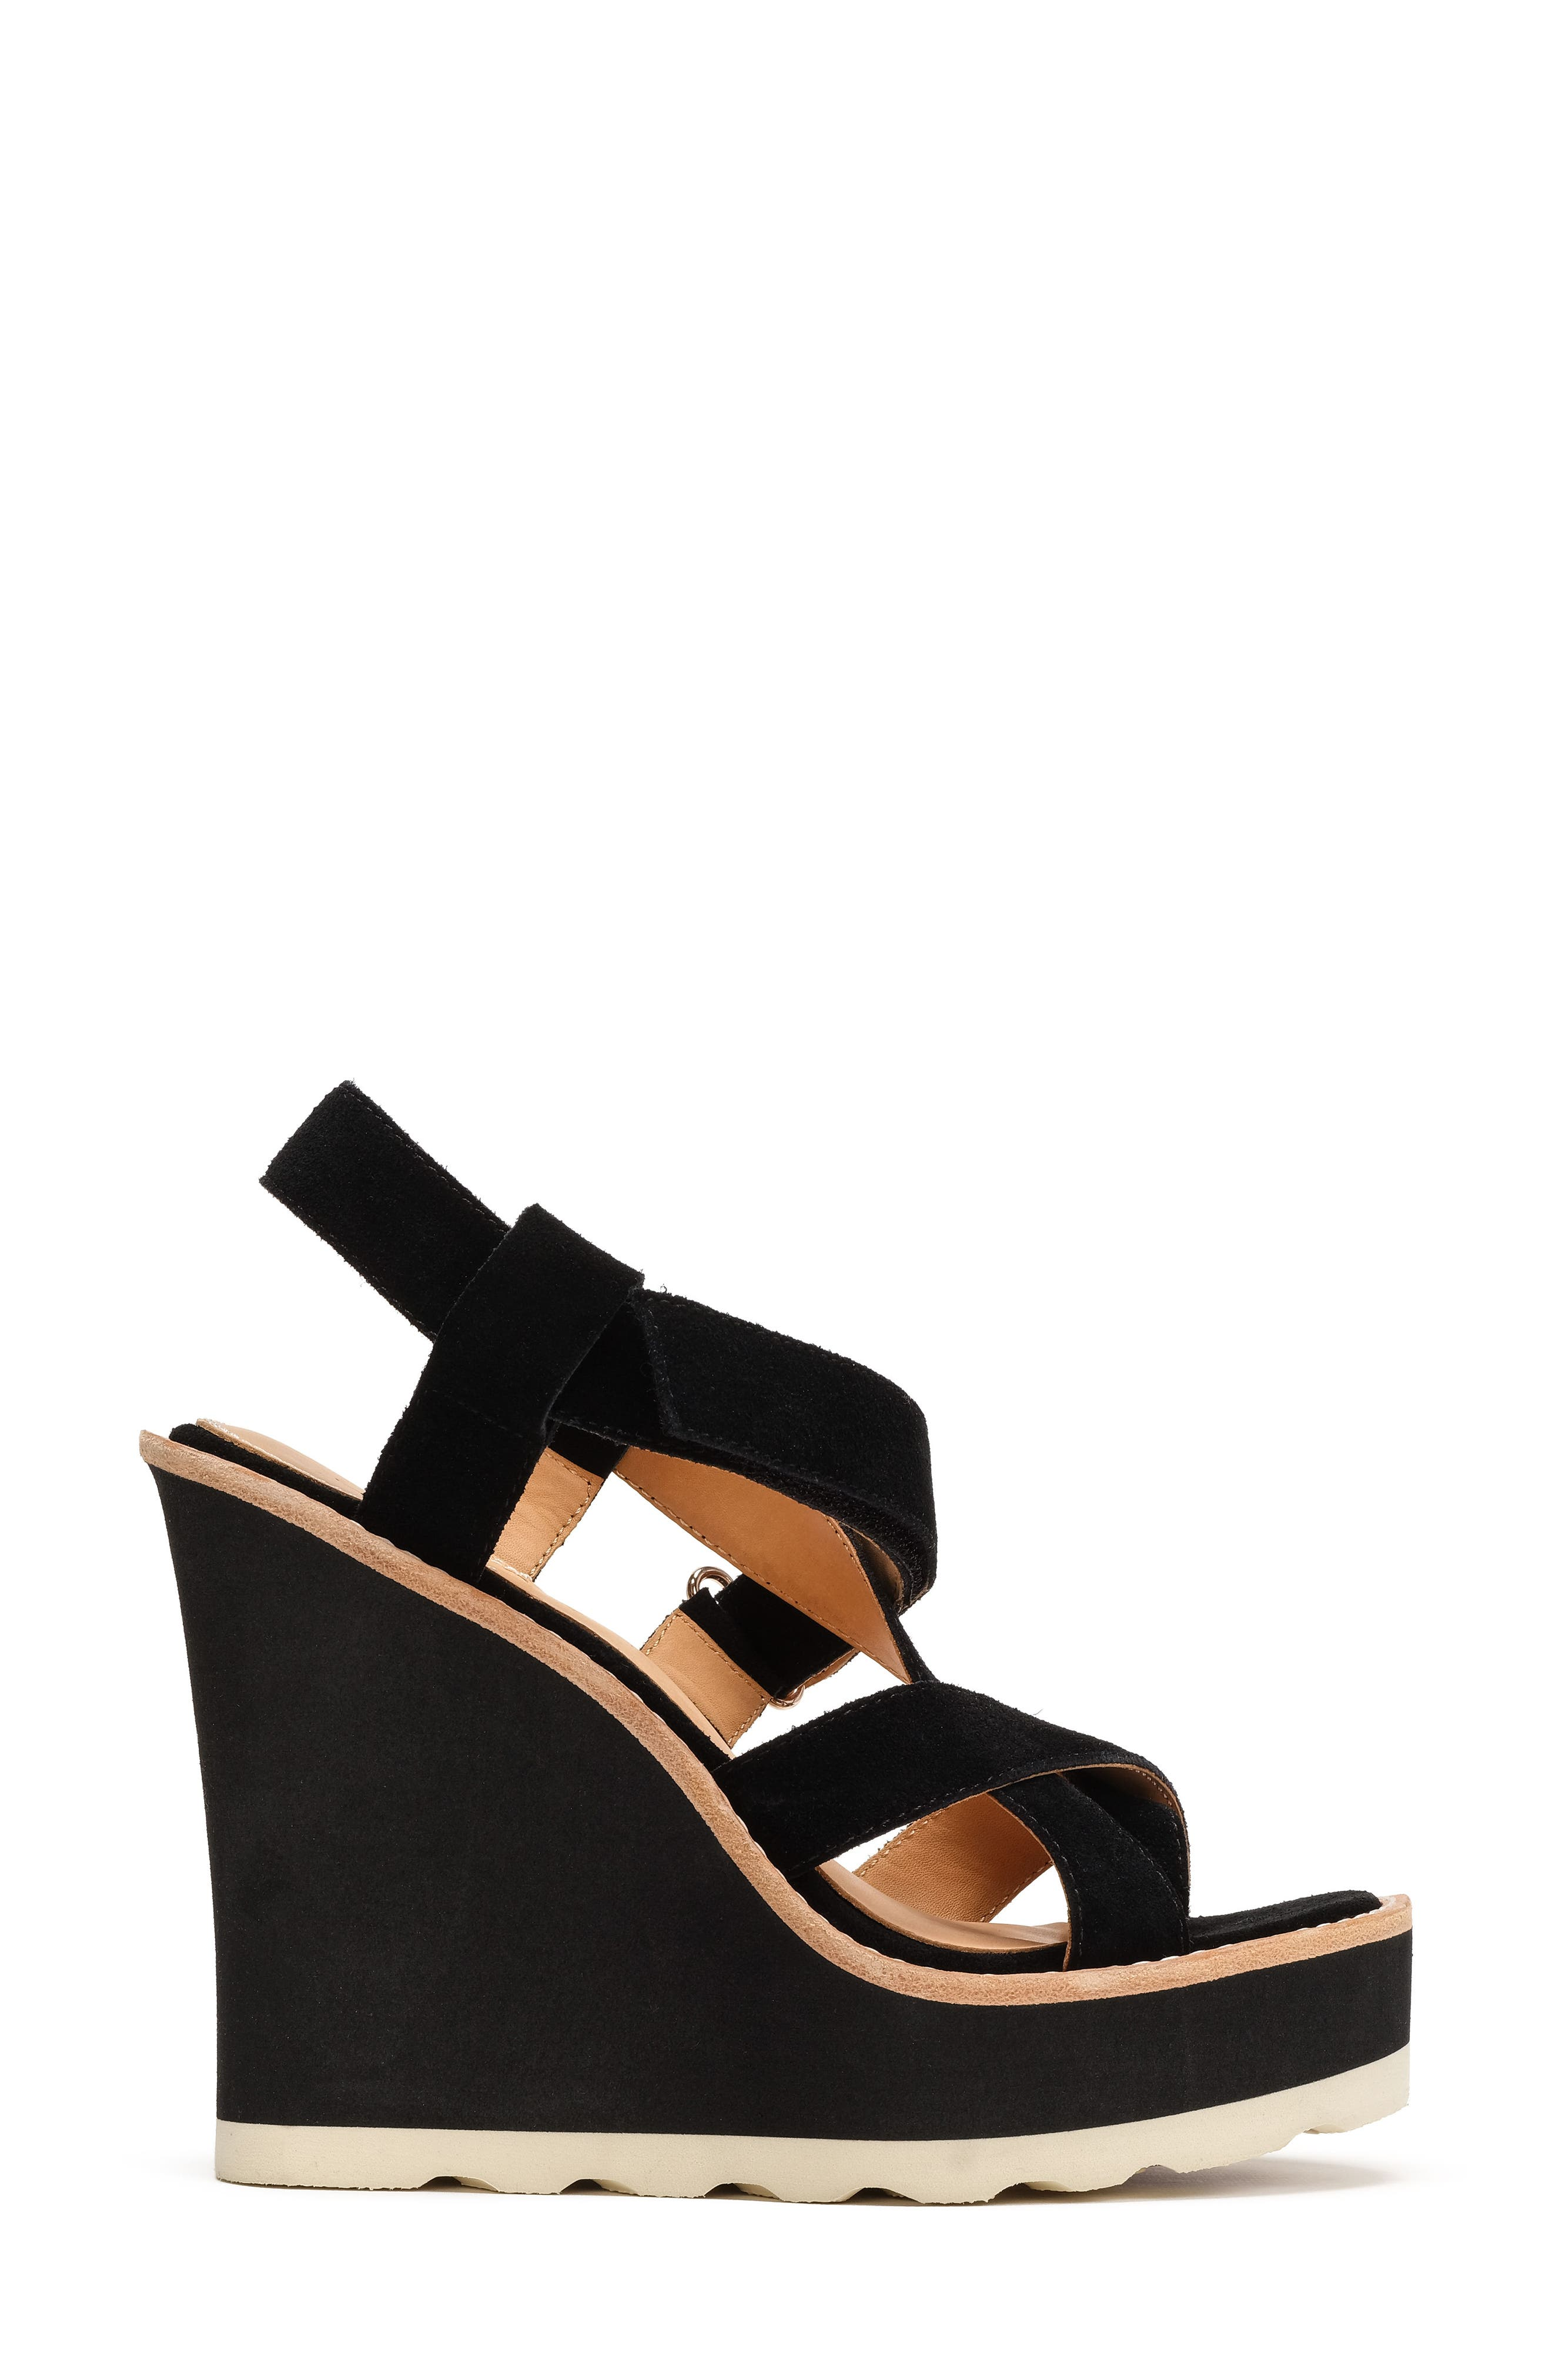 Rae Strappy Wedge Sandal,                             Alternate thumbnail 3, color,                             001